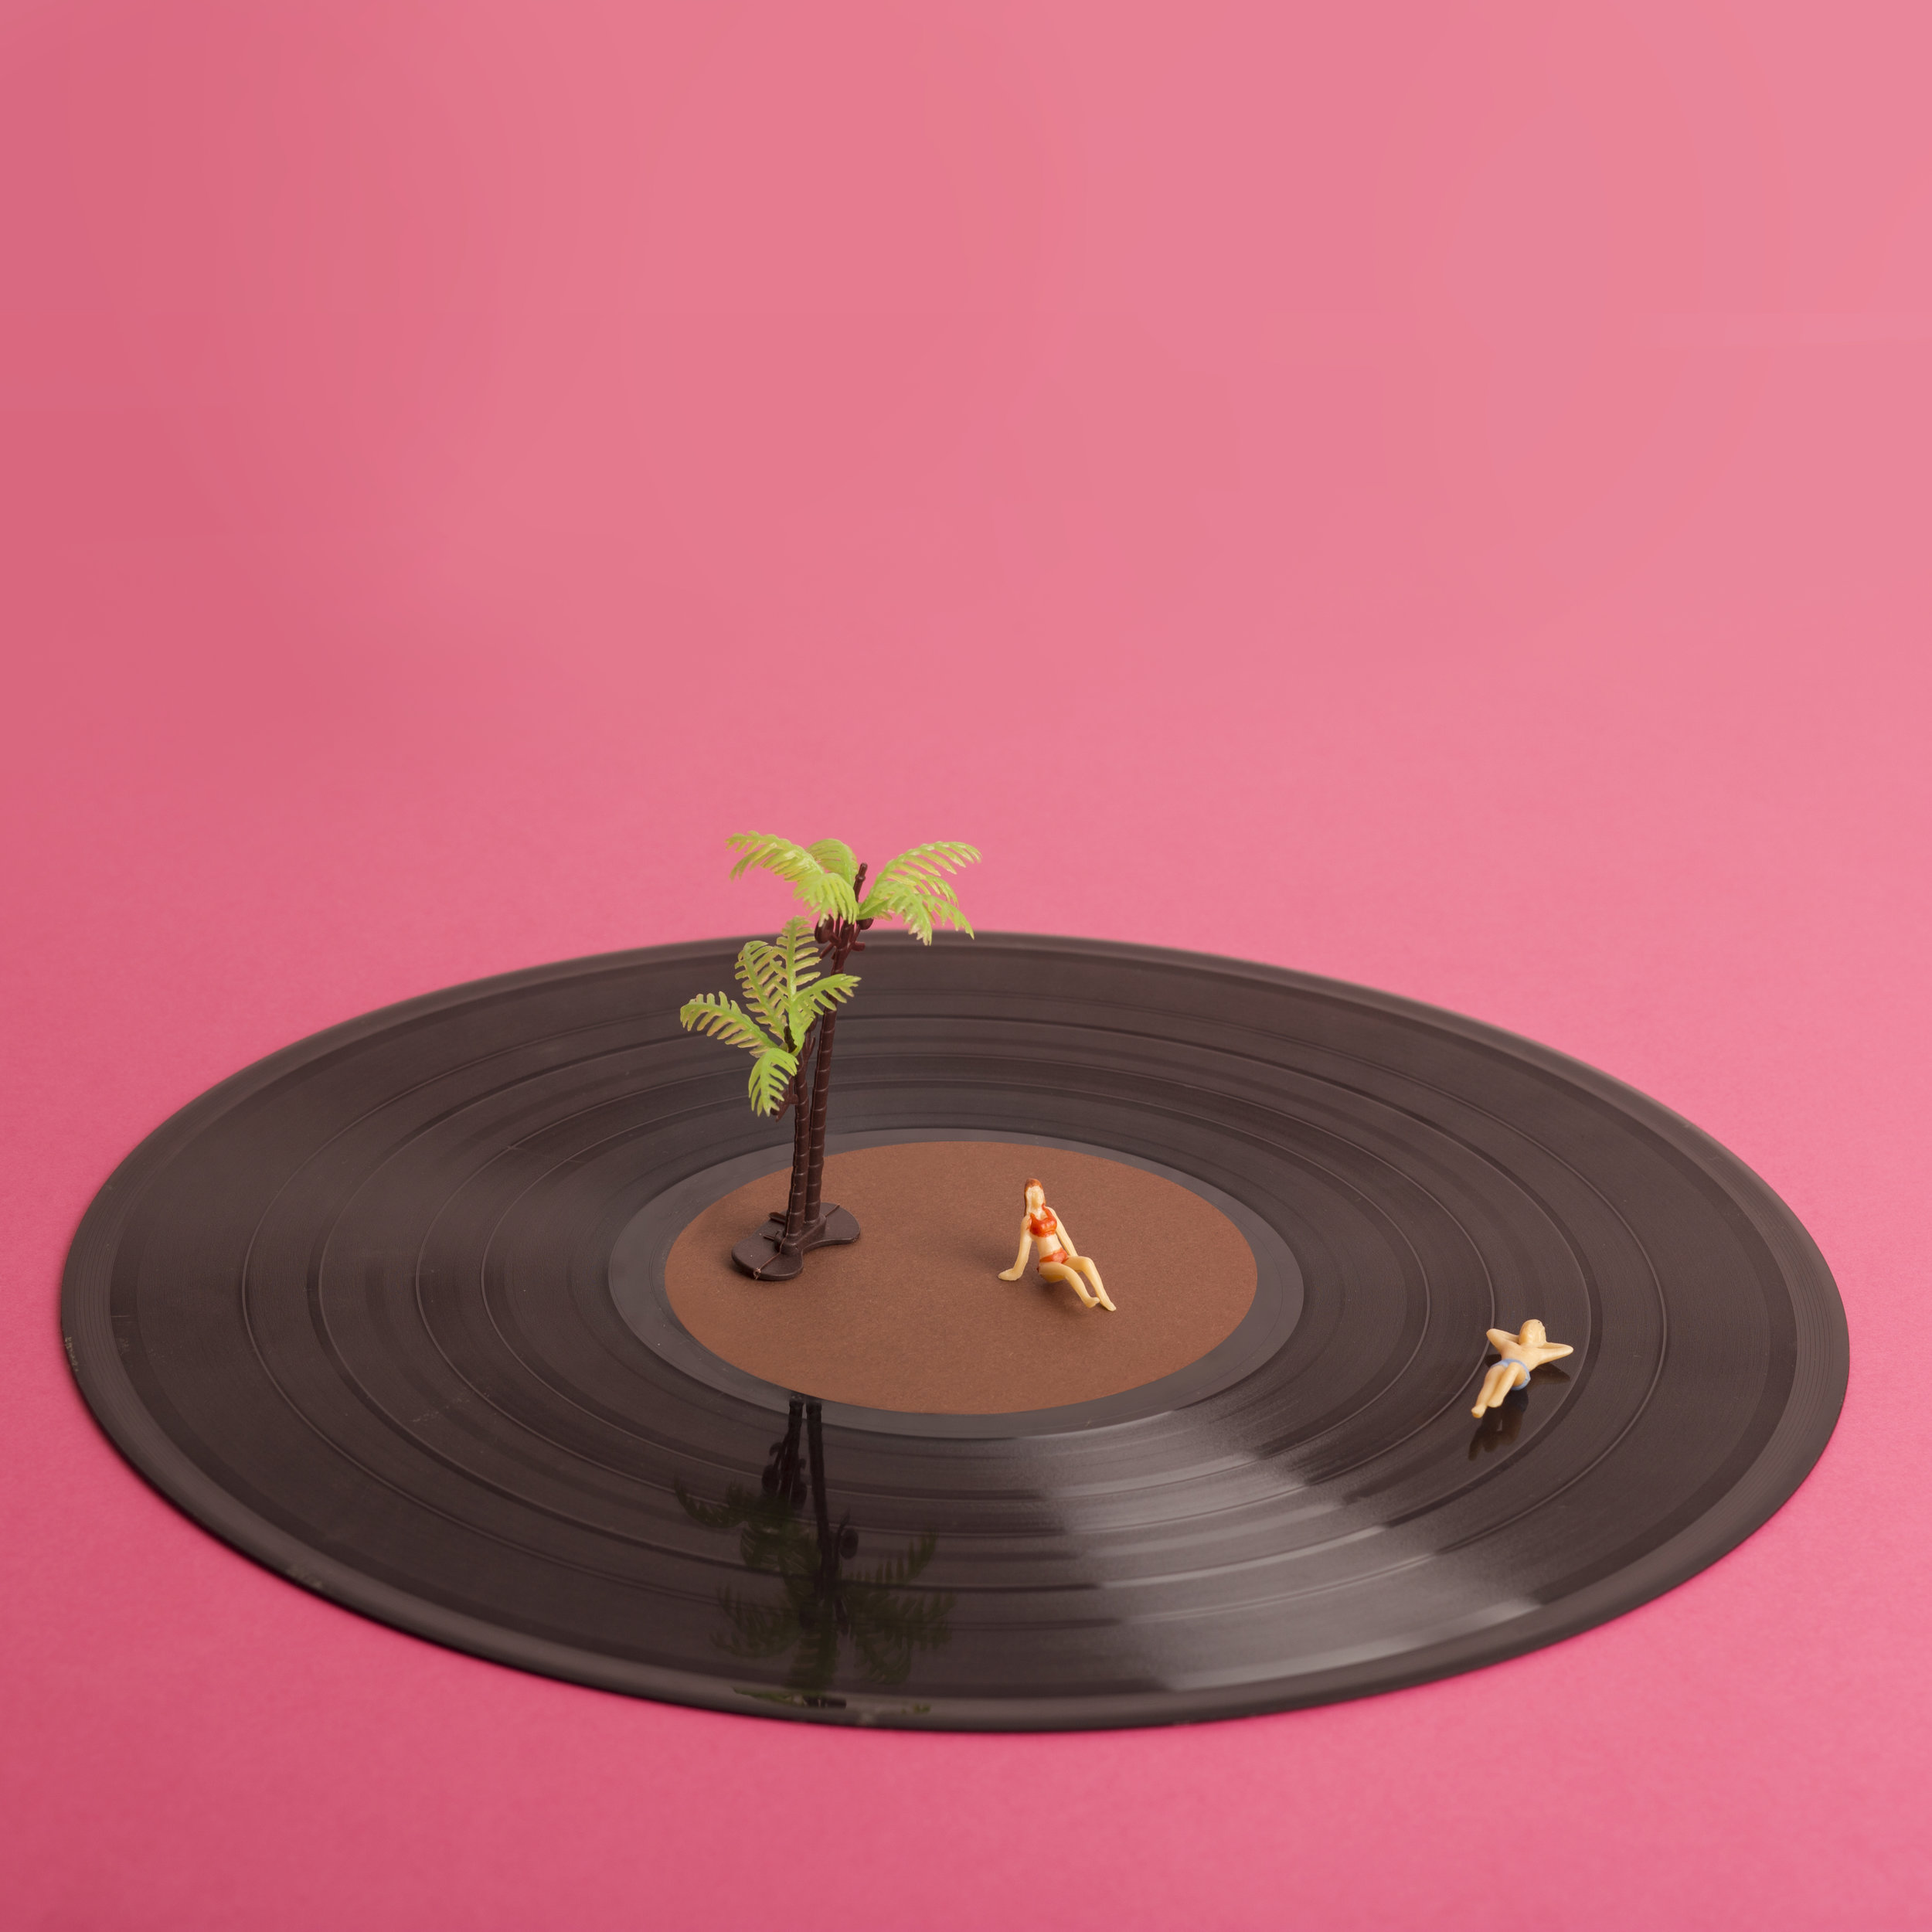 August 12th - Vinyl Record Day